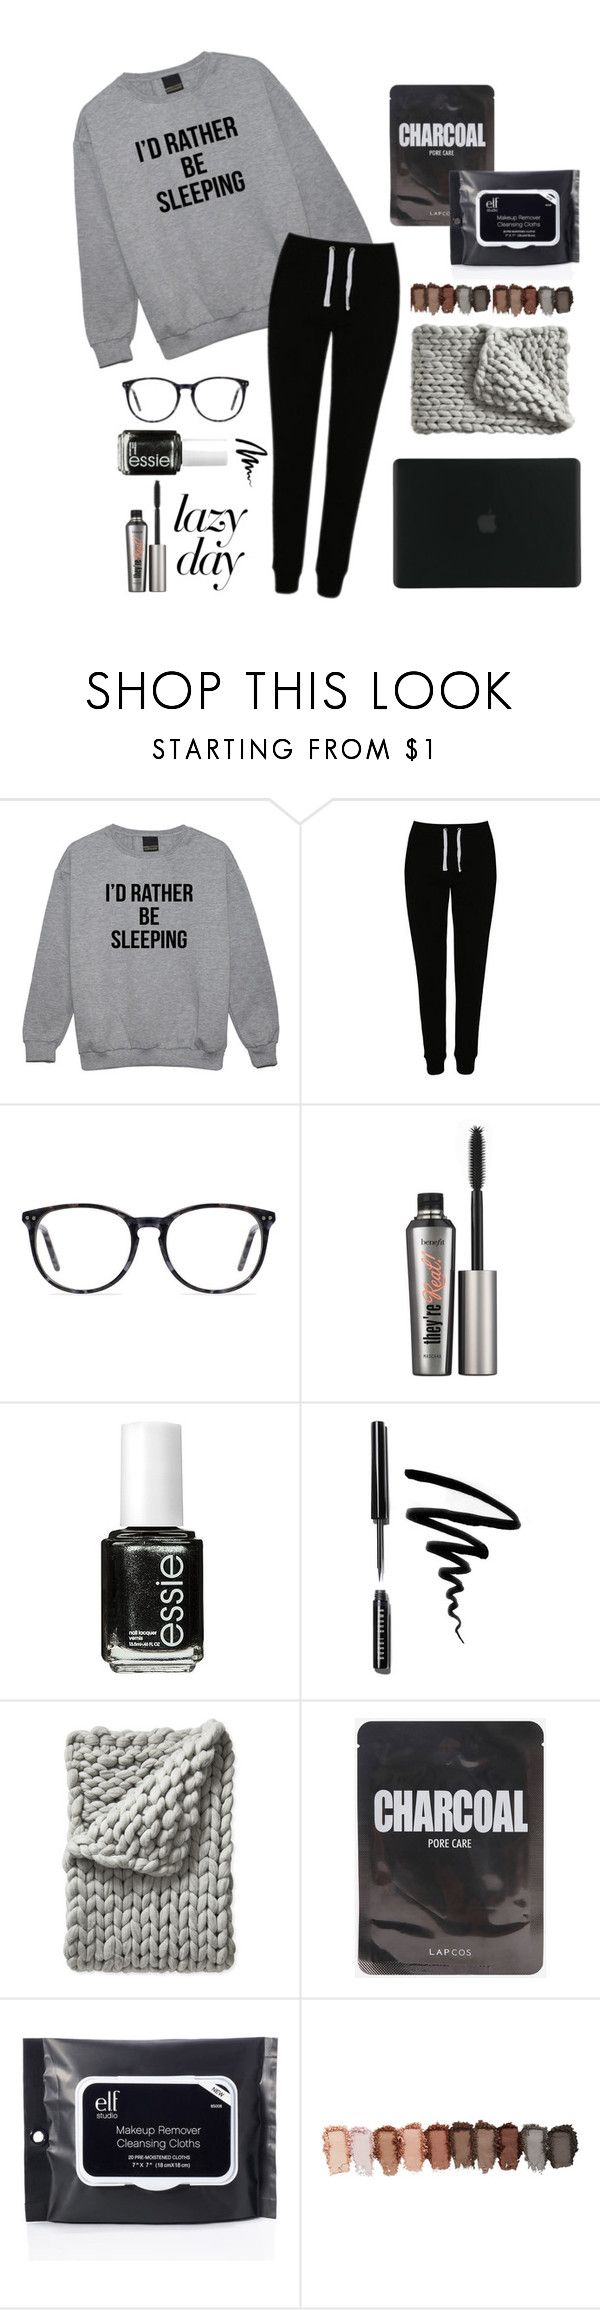 """""""take me back"""" by themodestunicorn ❤ liked on Polyvore featuring George, Ace, Benefit, Essie, Bobbi Brown Cosmetics, Serena & Lily, ELF Cosmetics and Tucano"""